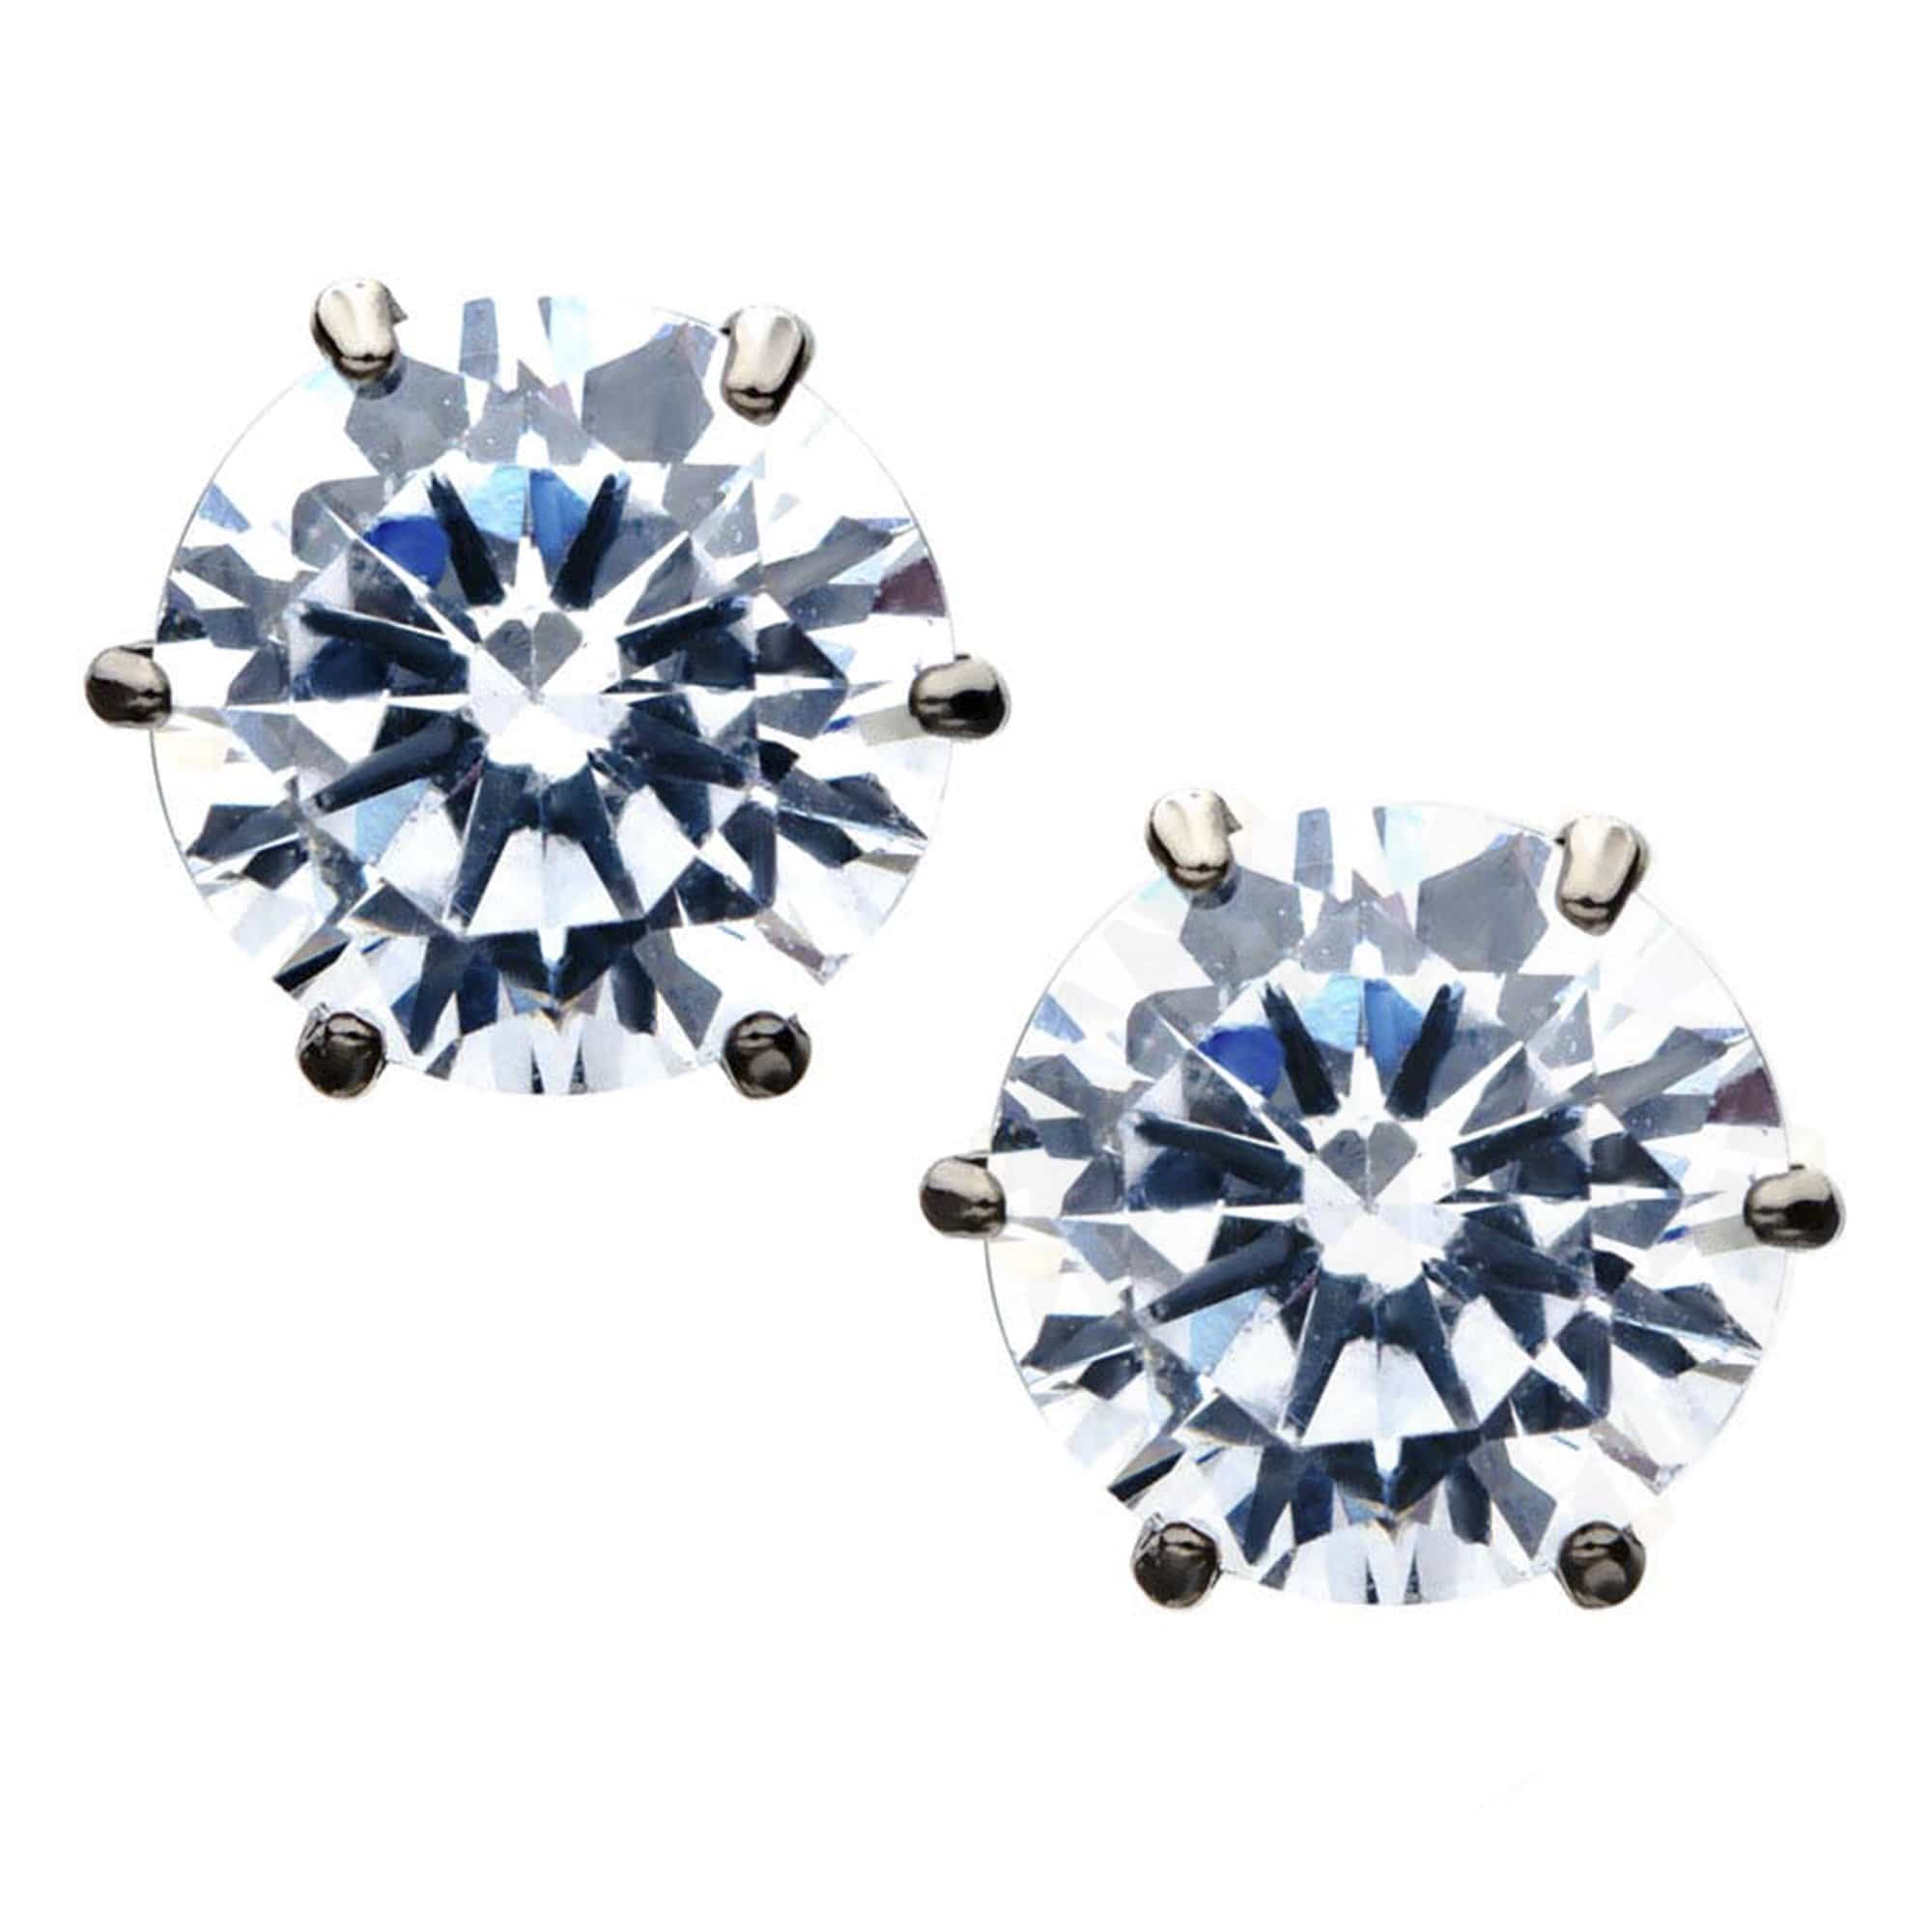 Titanium 5mm ear studs 6prongs